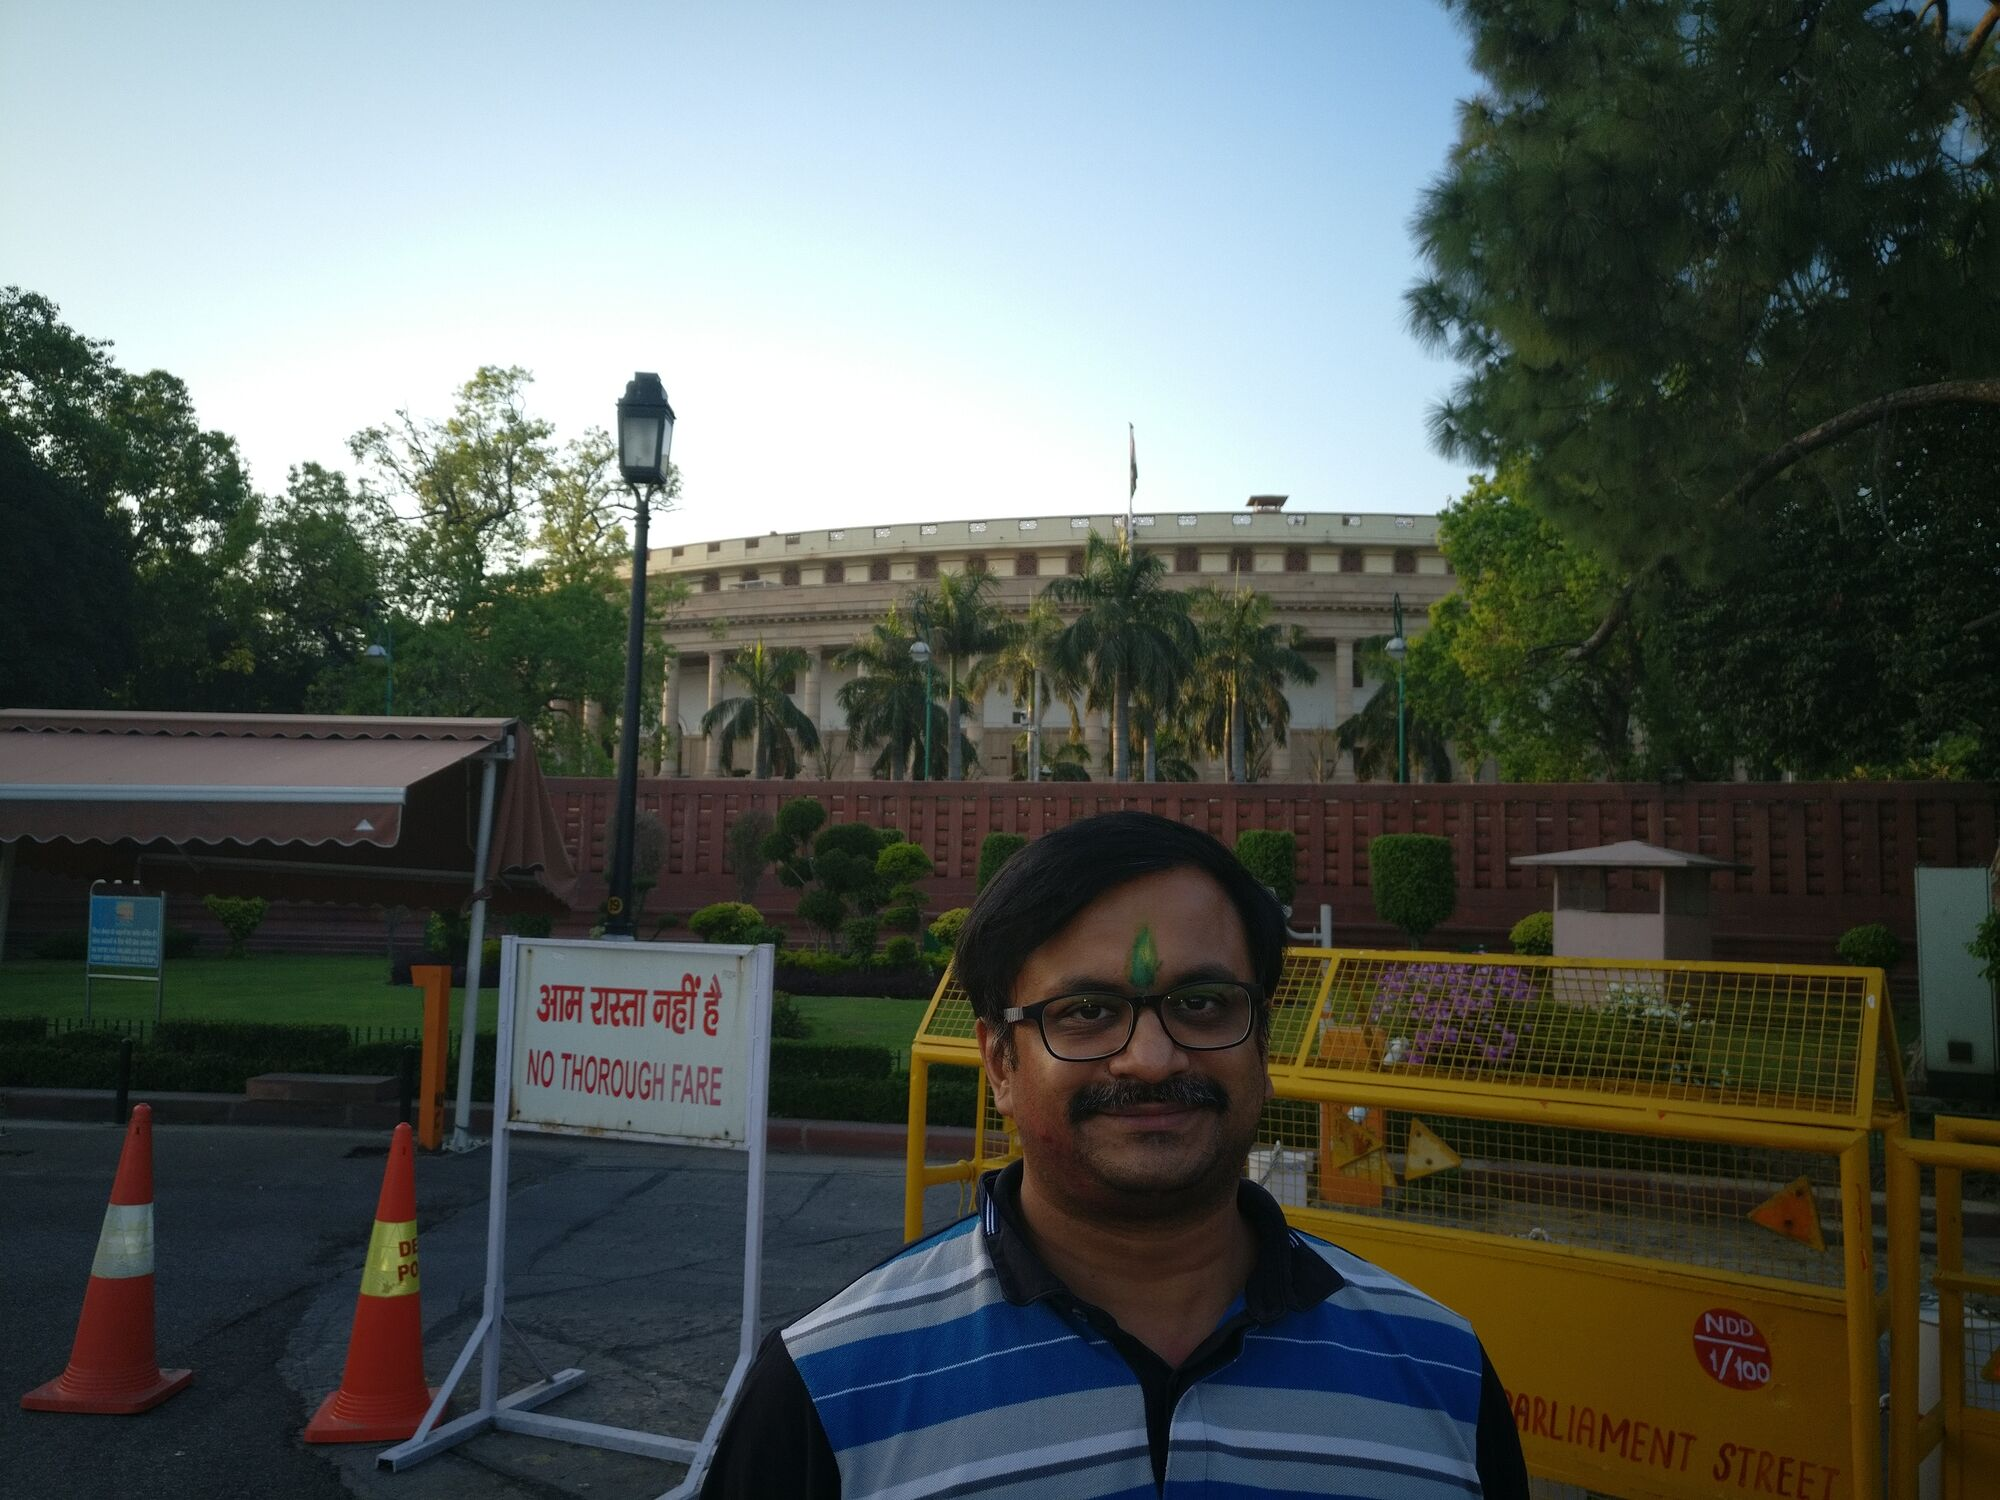 This is the closest I have gone to the seat of power in India - behind me is seen Parliament of India building.